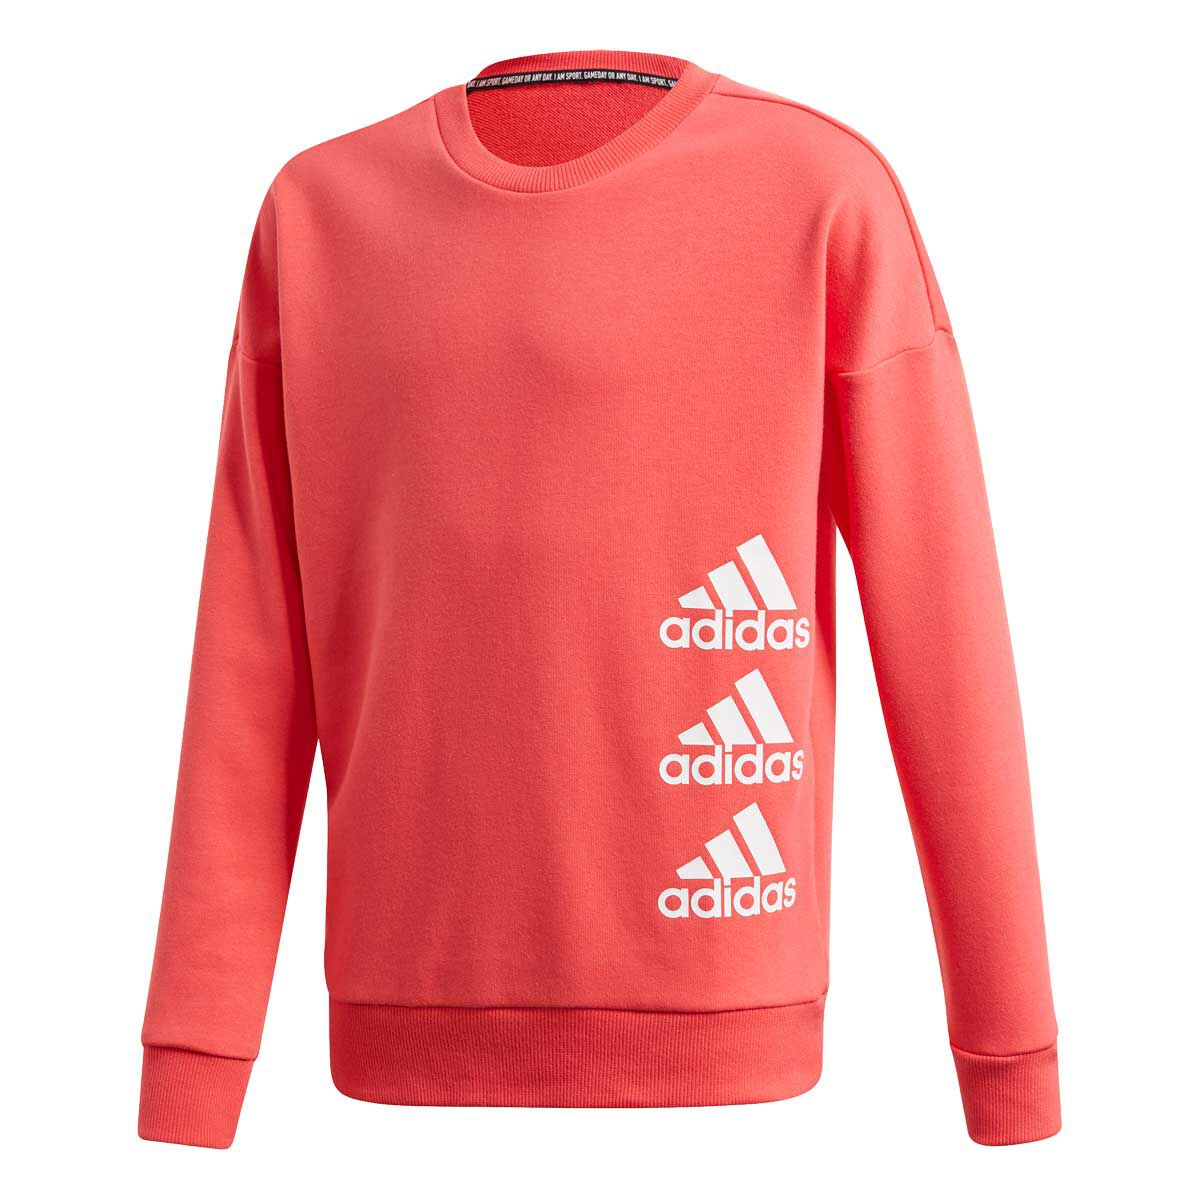 Women's New York Red Bulls adidas Red climalite Half Zip Pullover Jacket